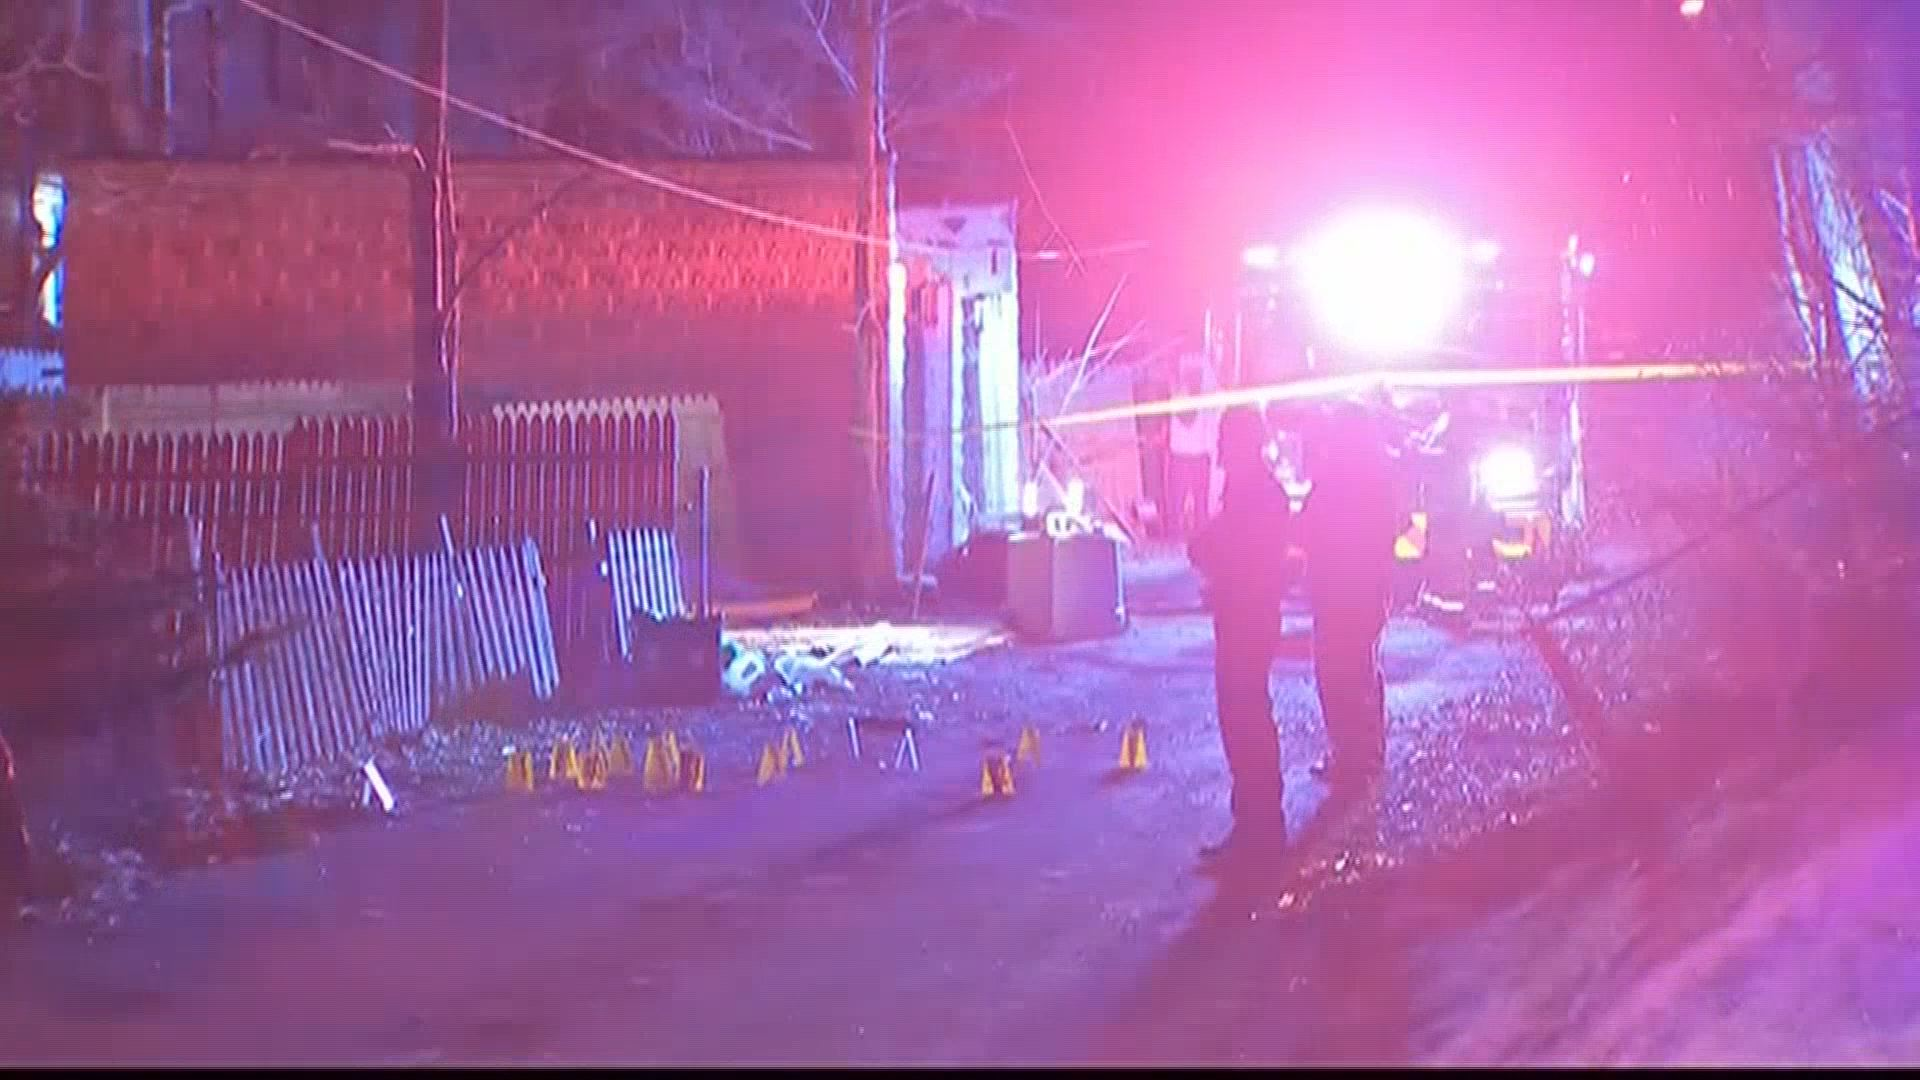 Five People Were Killed And Three Injured In An Ambush Style Shooting At A Backyard Party Late Wednesday Wilkinsburg Working Class Suburb East Of